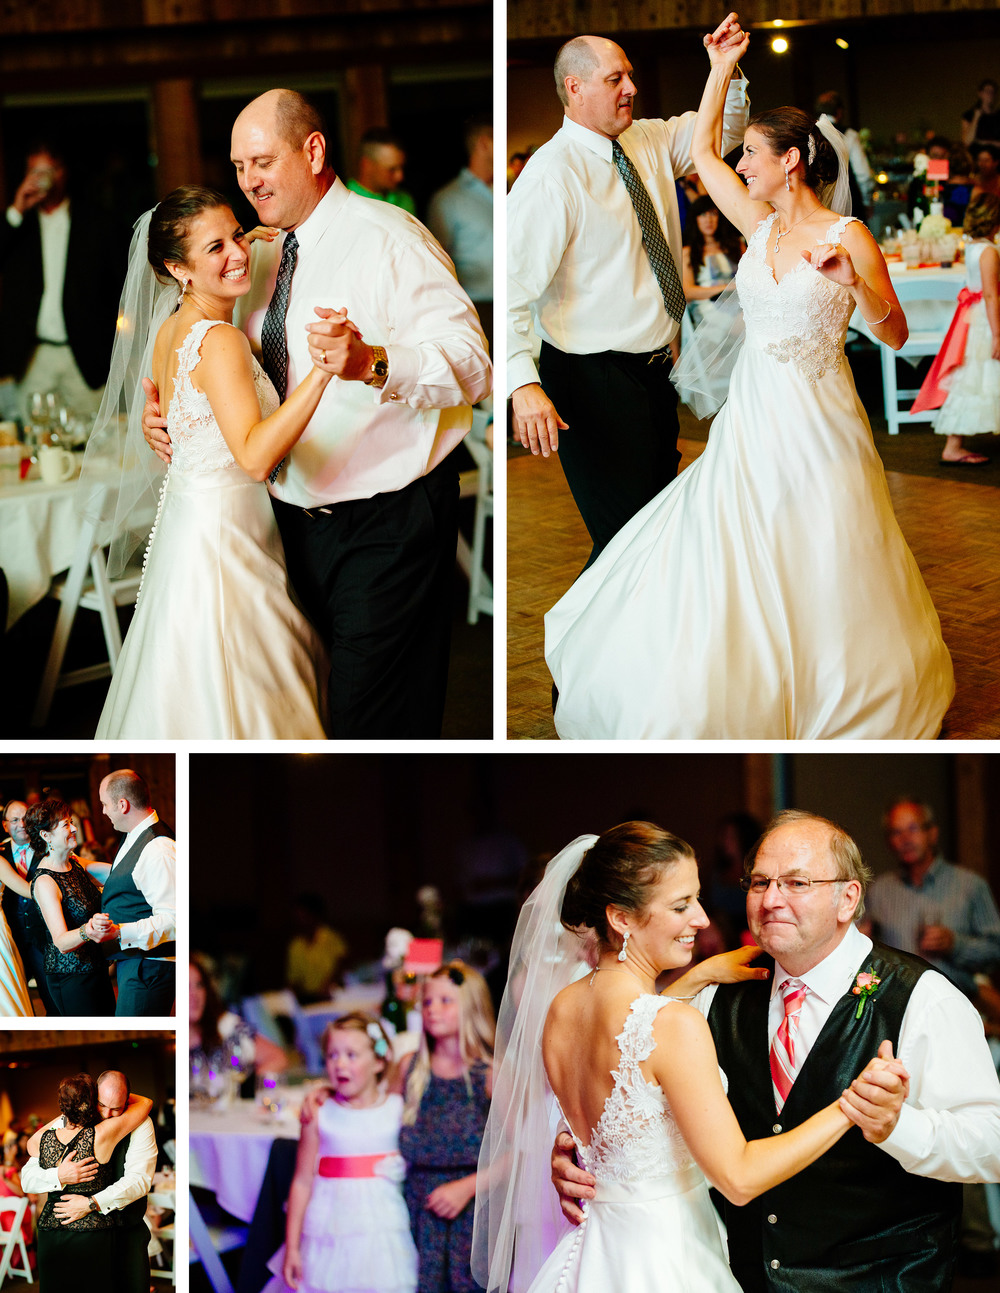 Grandview_Lodge_Wedding_27.jpg